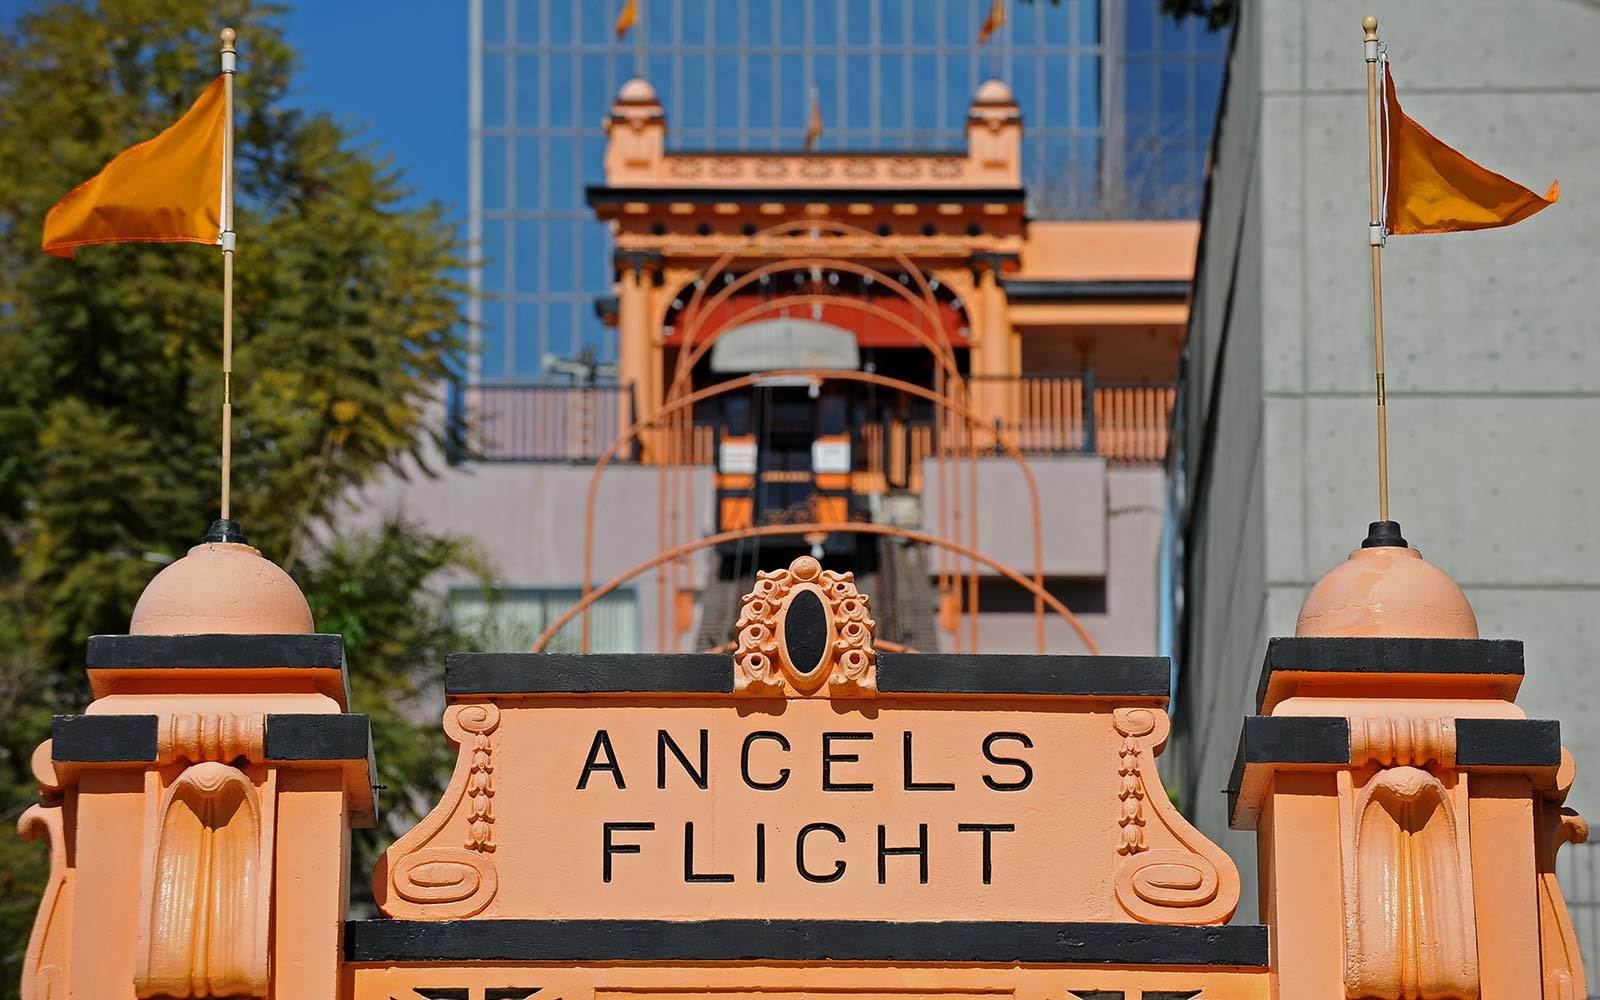 """The Angels Flight Railway, for the first time in more than nine years, resumes ferrying passengers up and down Bunker Hill in downtown Los Angeles Angel's Flight, which has been dubbed """"the shortest railway in the world,"""""""